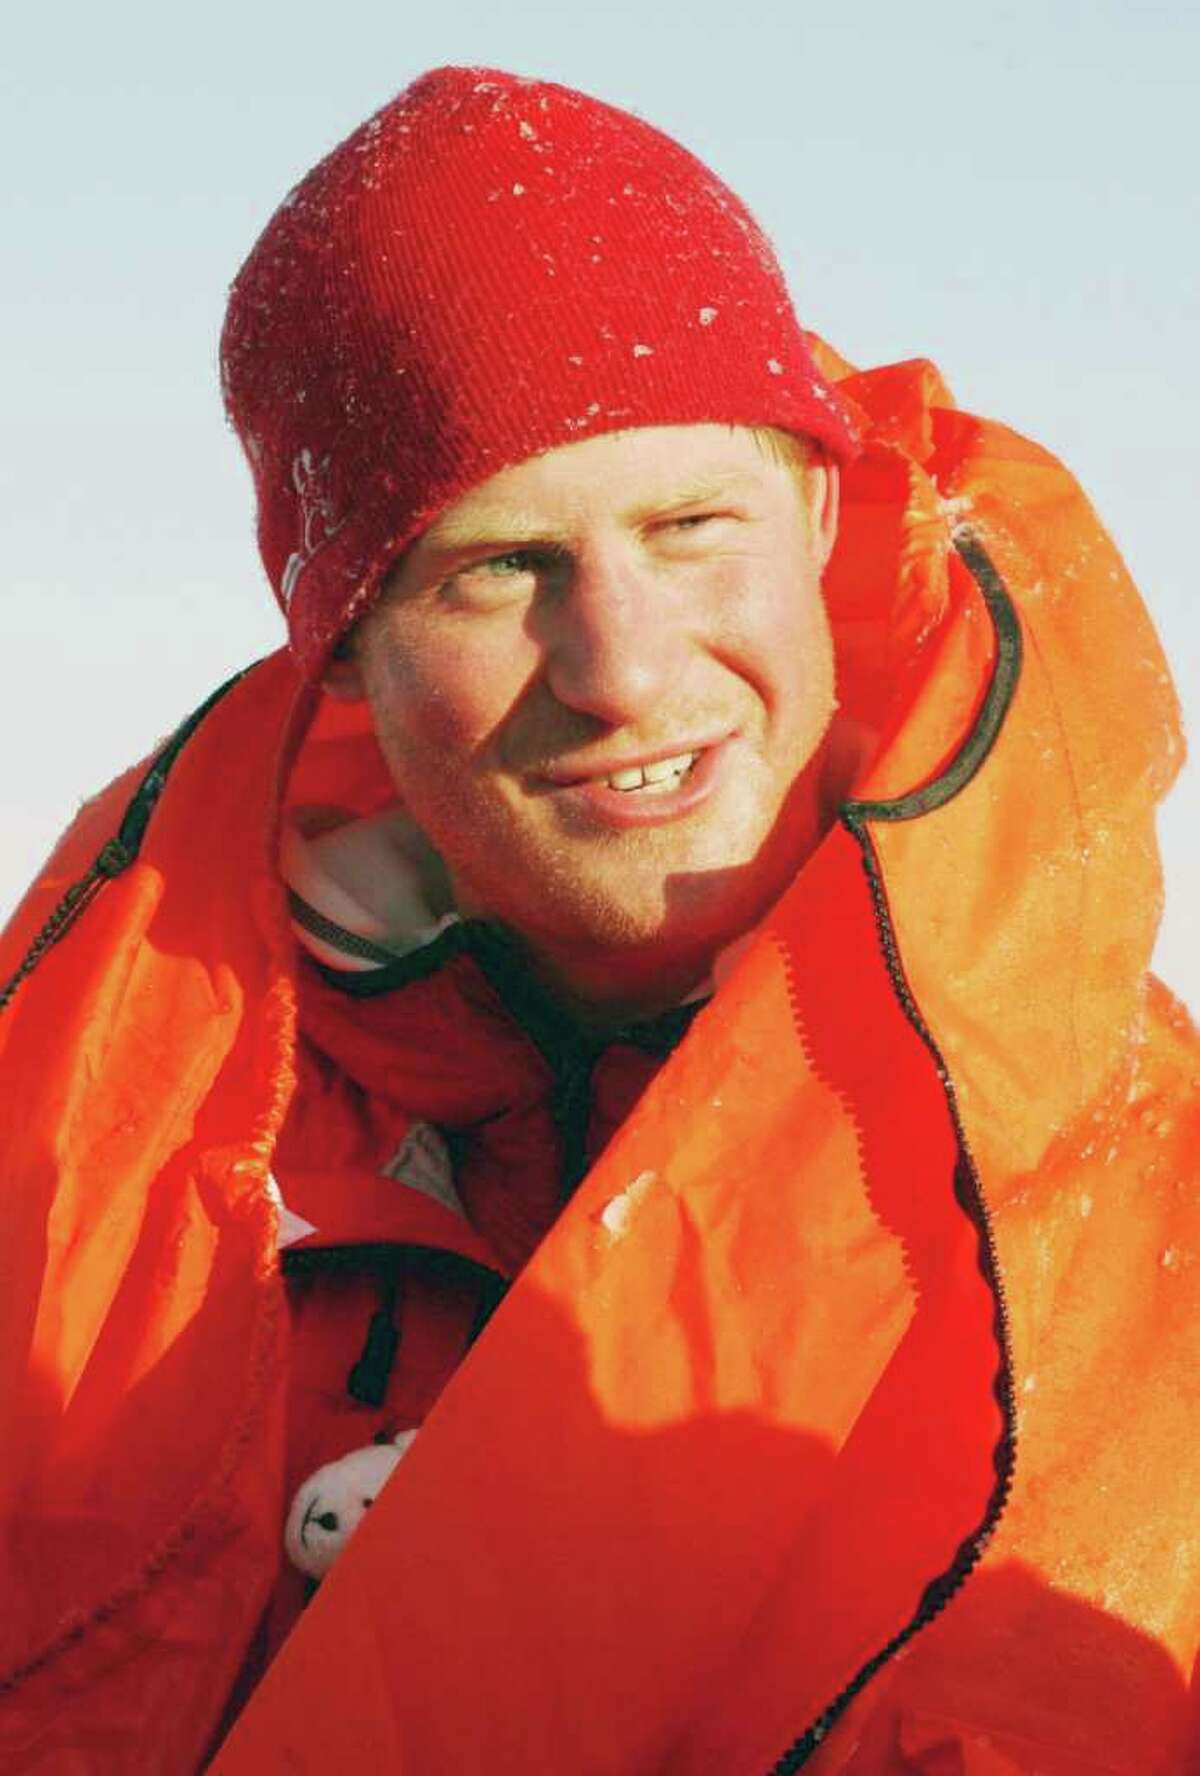 SPITSBERGEN, NORWAY - MARCH 30: Britain's Prince Harry, joining the Walking with the Wounded expedition team, tries out an immersion suit on the island of Spitsbergen, situated between the Norwegian mainland and the North Pole, during the last days of preparation before setting off to the North Pole on foot, on March 30, 2011 in Spitsbergen, Norway. (Photo by David Cheskin/WPA Pool/Getty Images) *** Local Caption *** Prince Harry